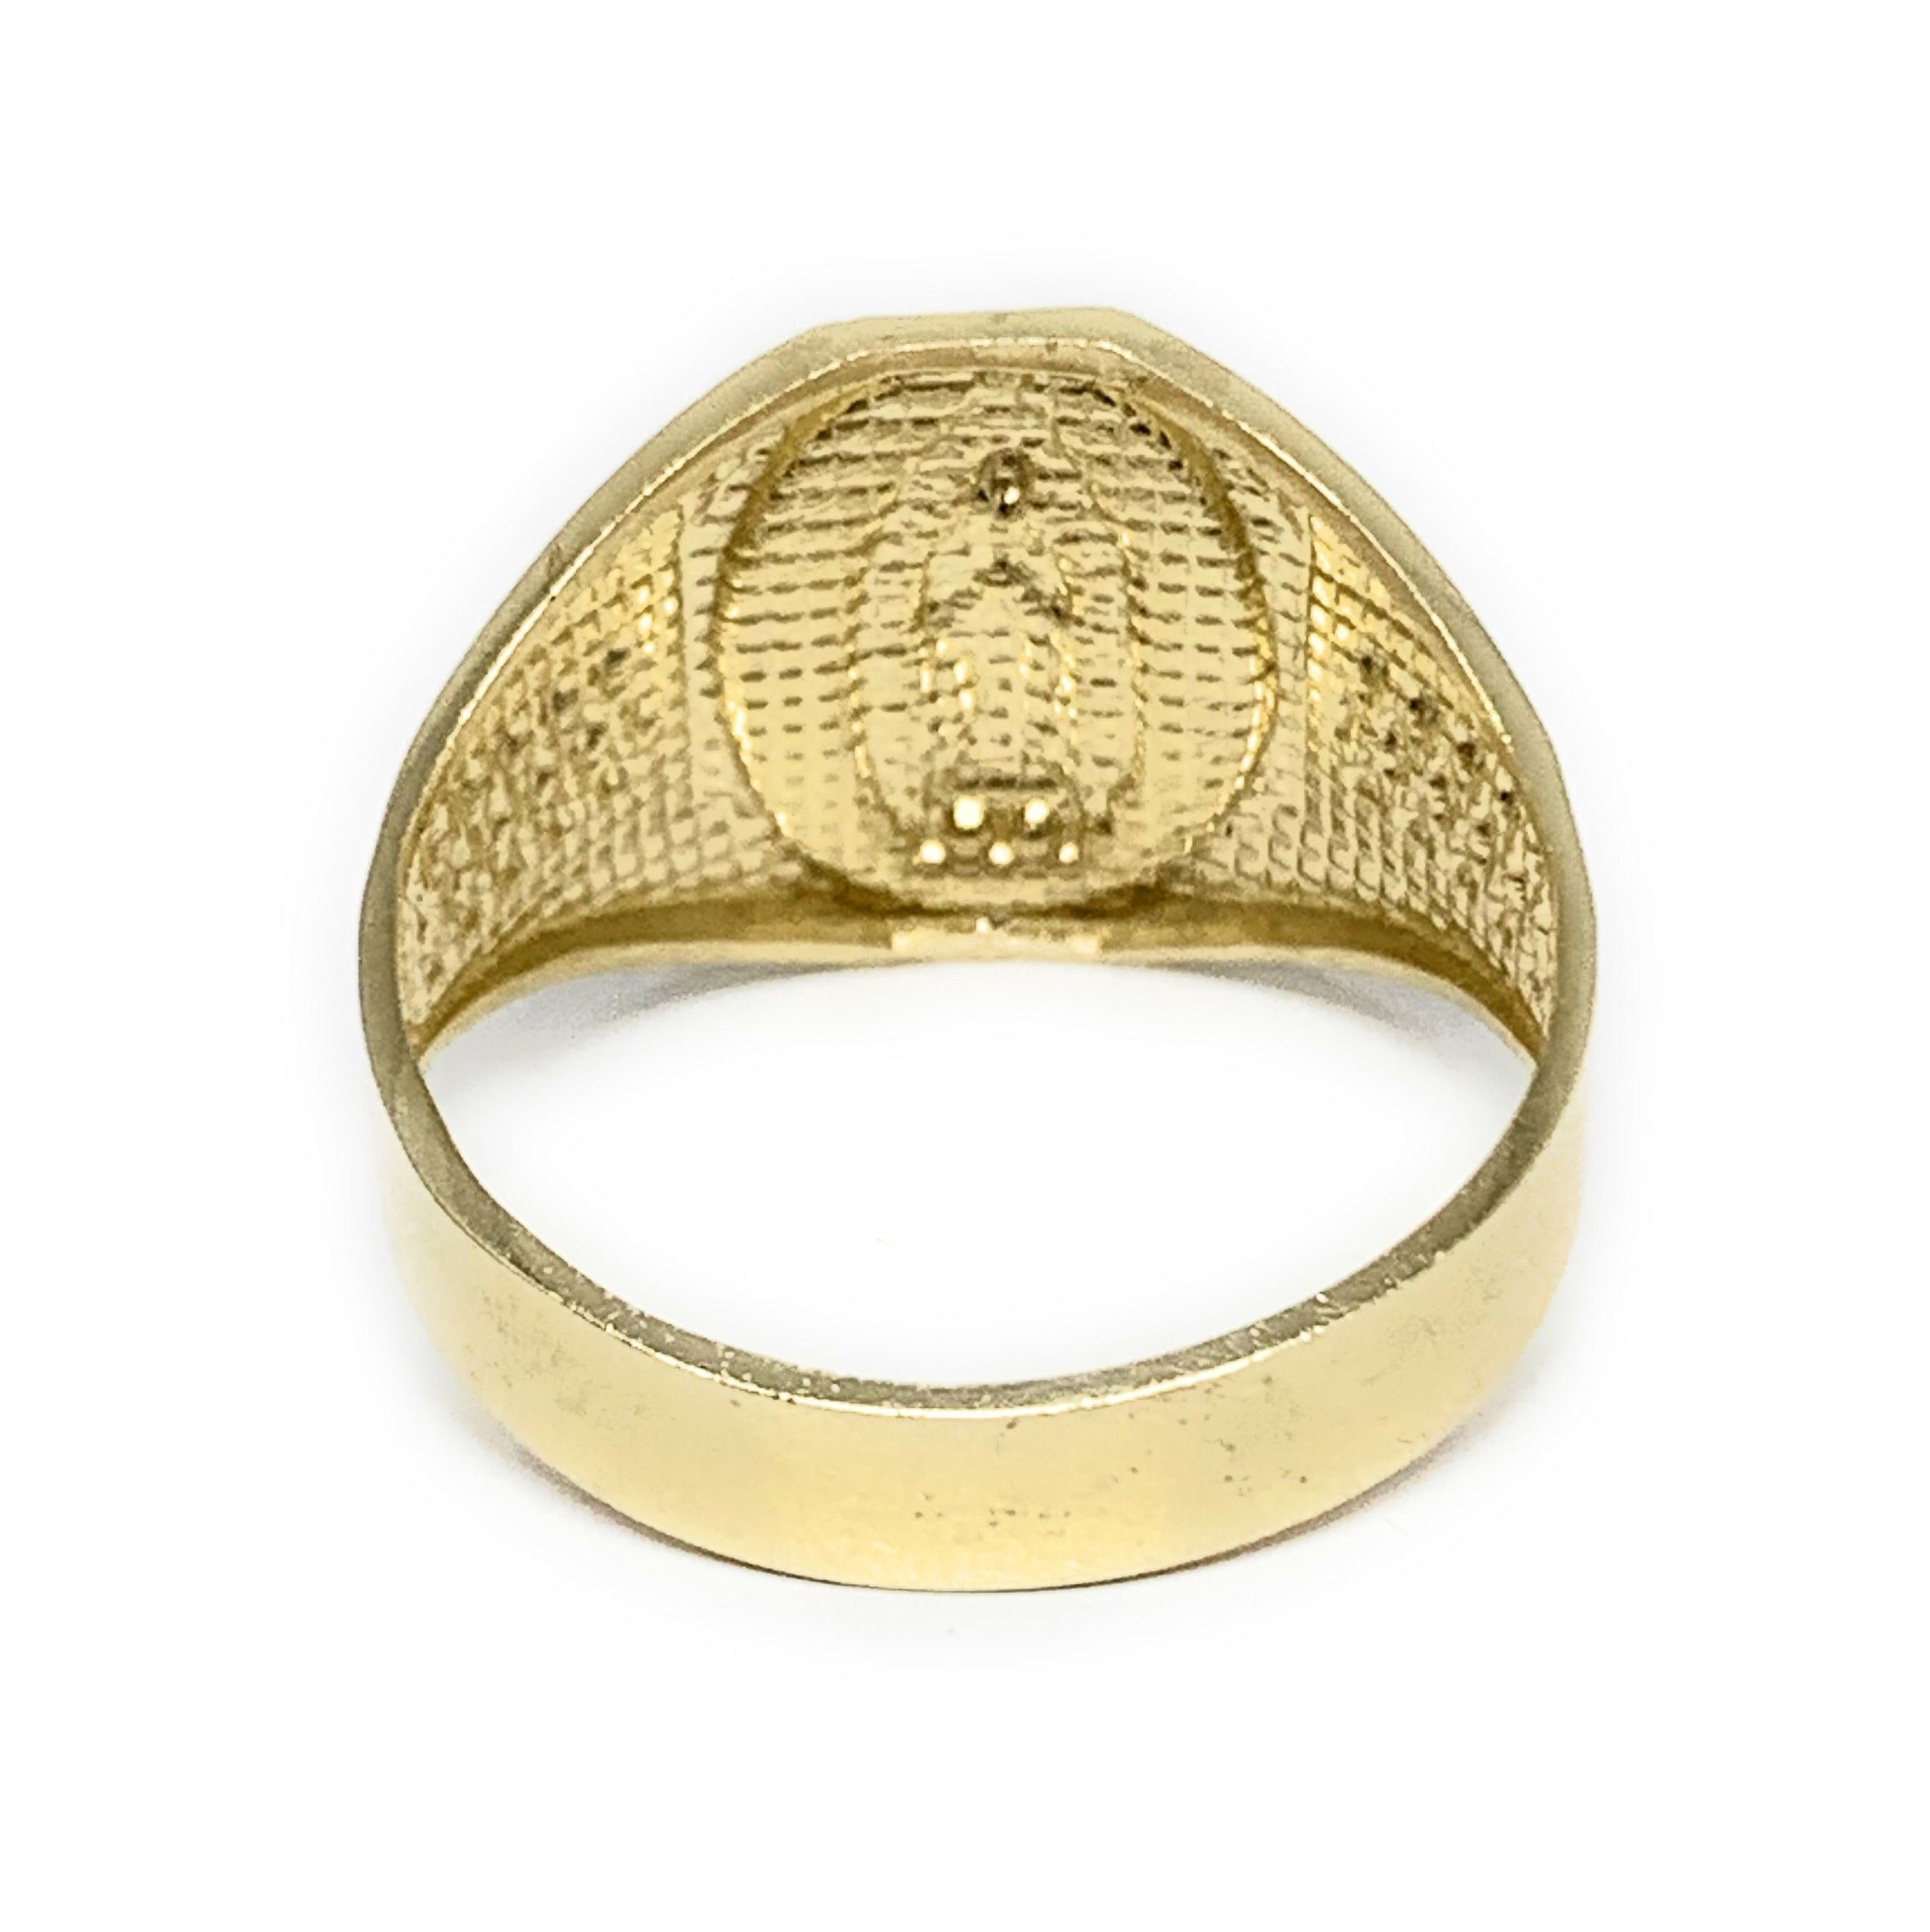 10k Solid Gold Yellow & White Gold Virrgin Mary Ring